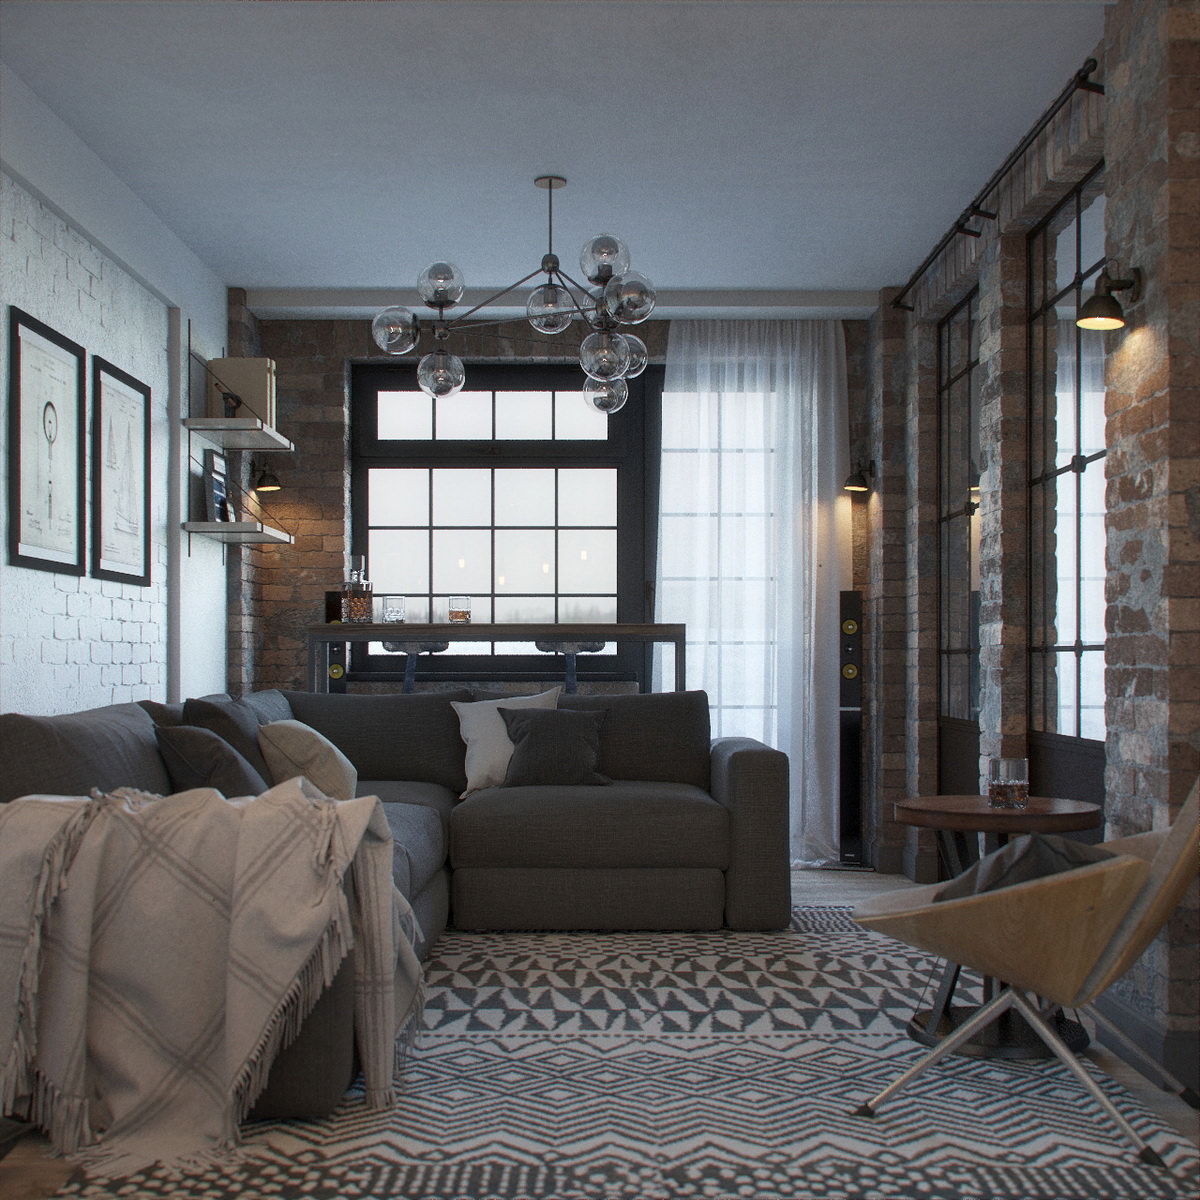 Improve Interior Design Product Sourcing With 3d Home: Visualization Of Loft-Style Interior Design Concept • Lunas